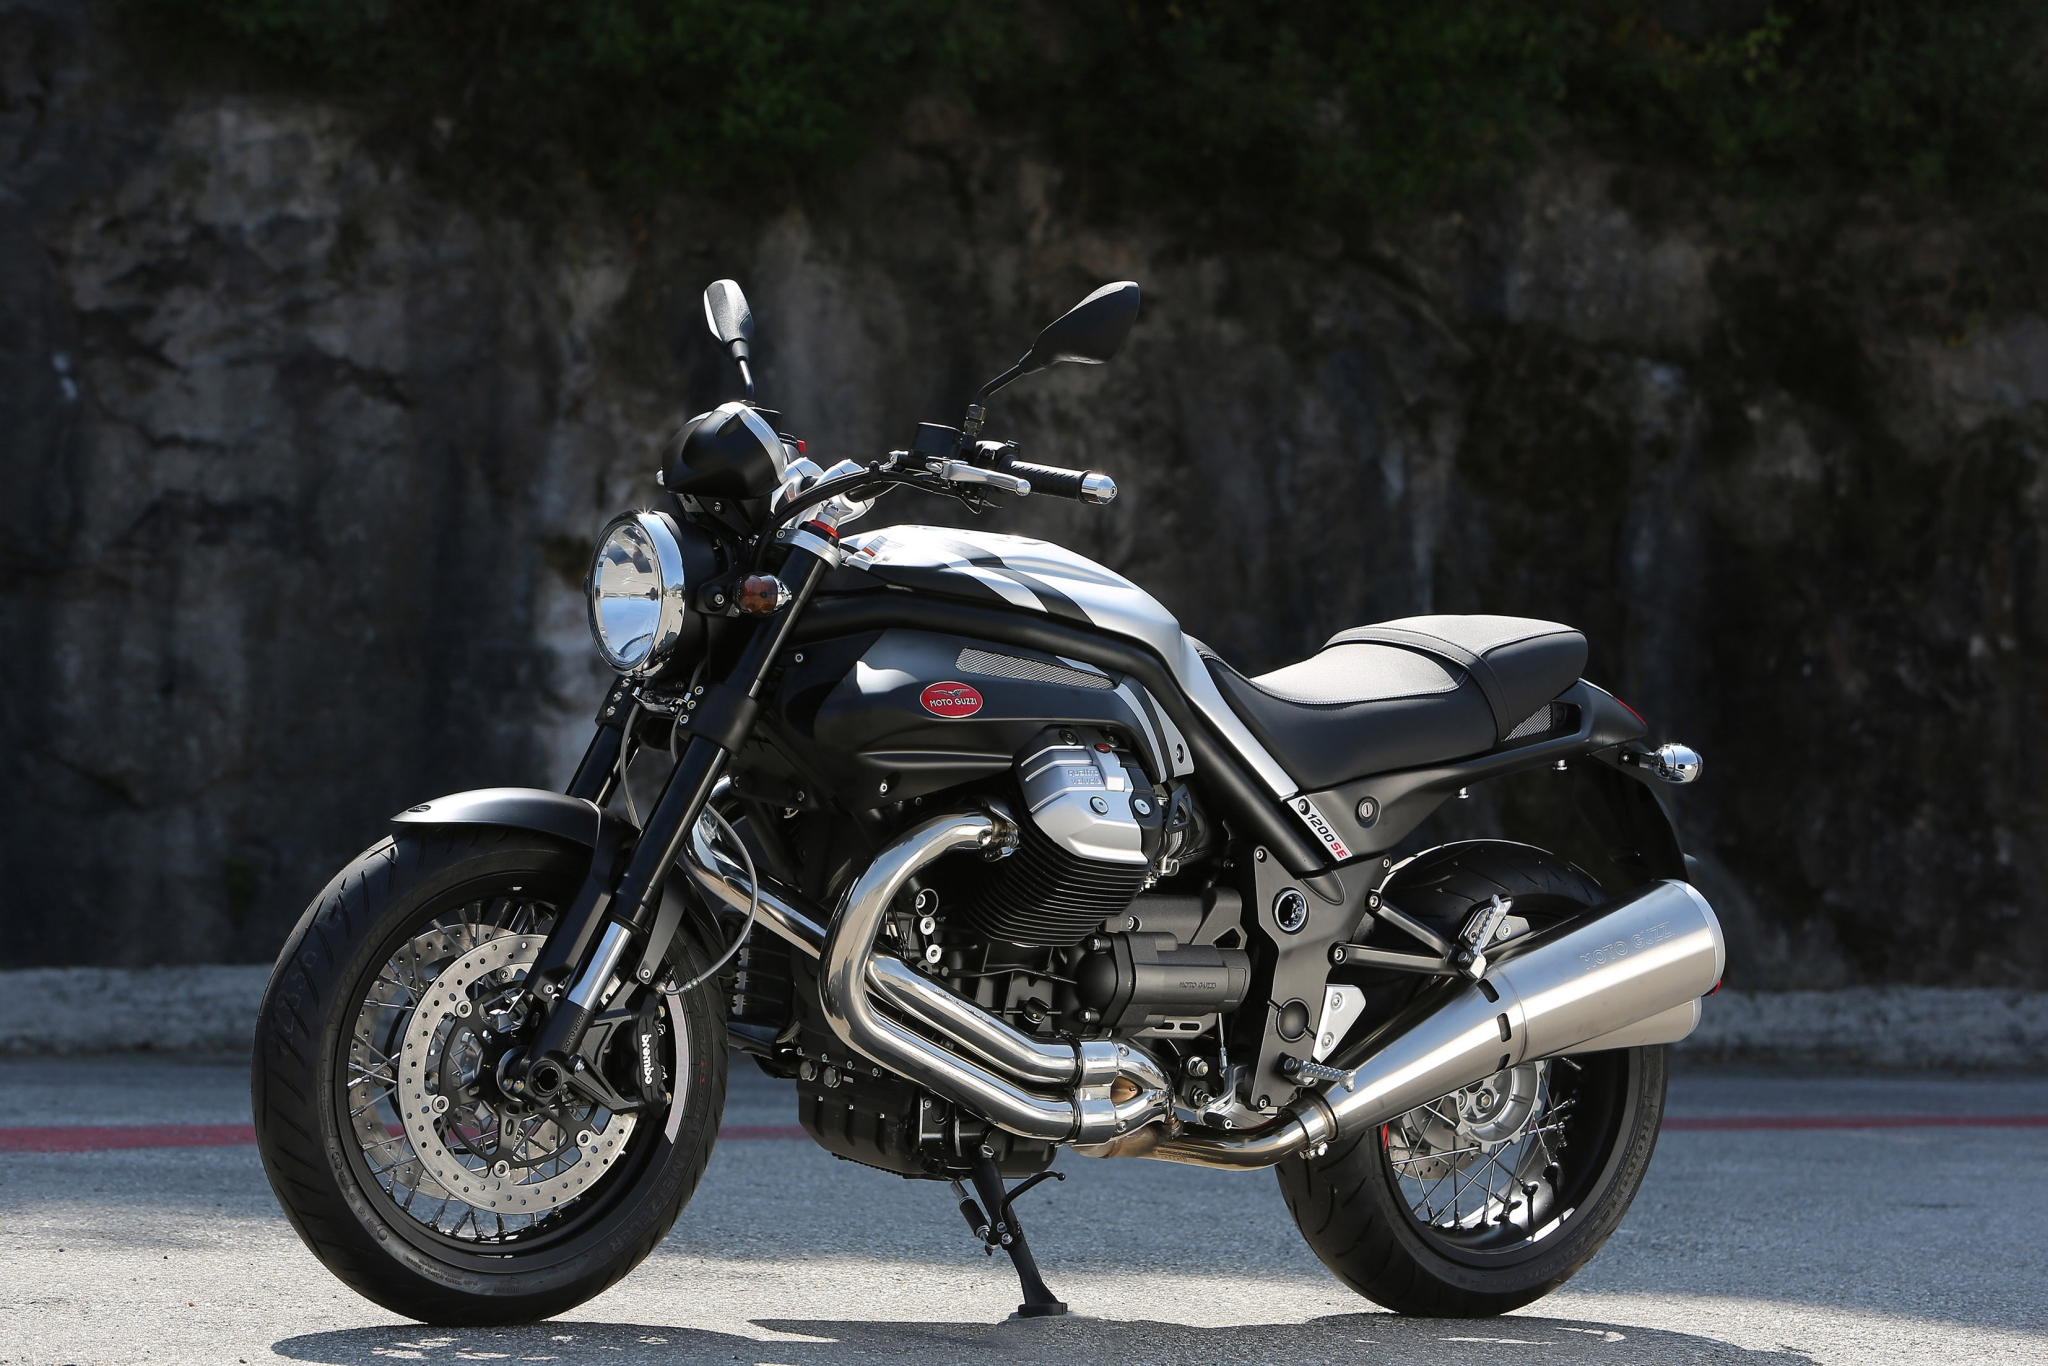 Moto Guzzi Griso V Special Edition Shows Aesthetic Upgrades Photo Gallery